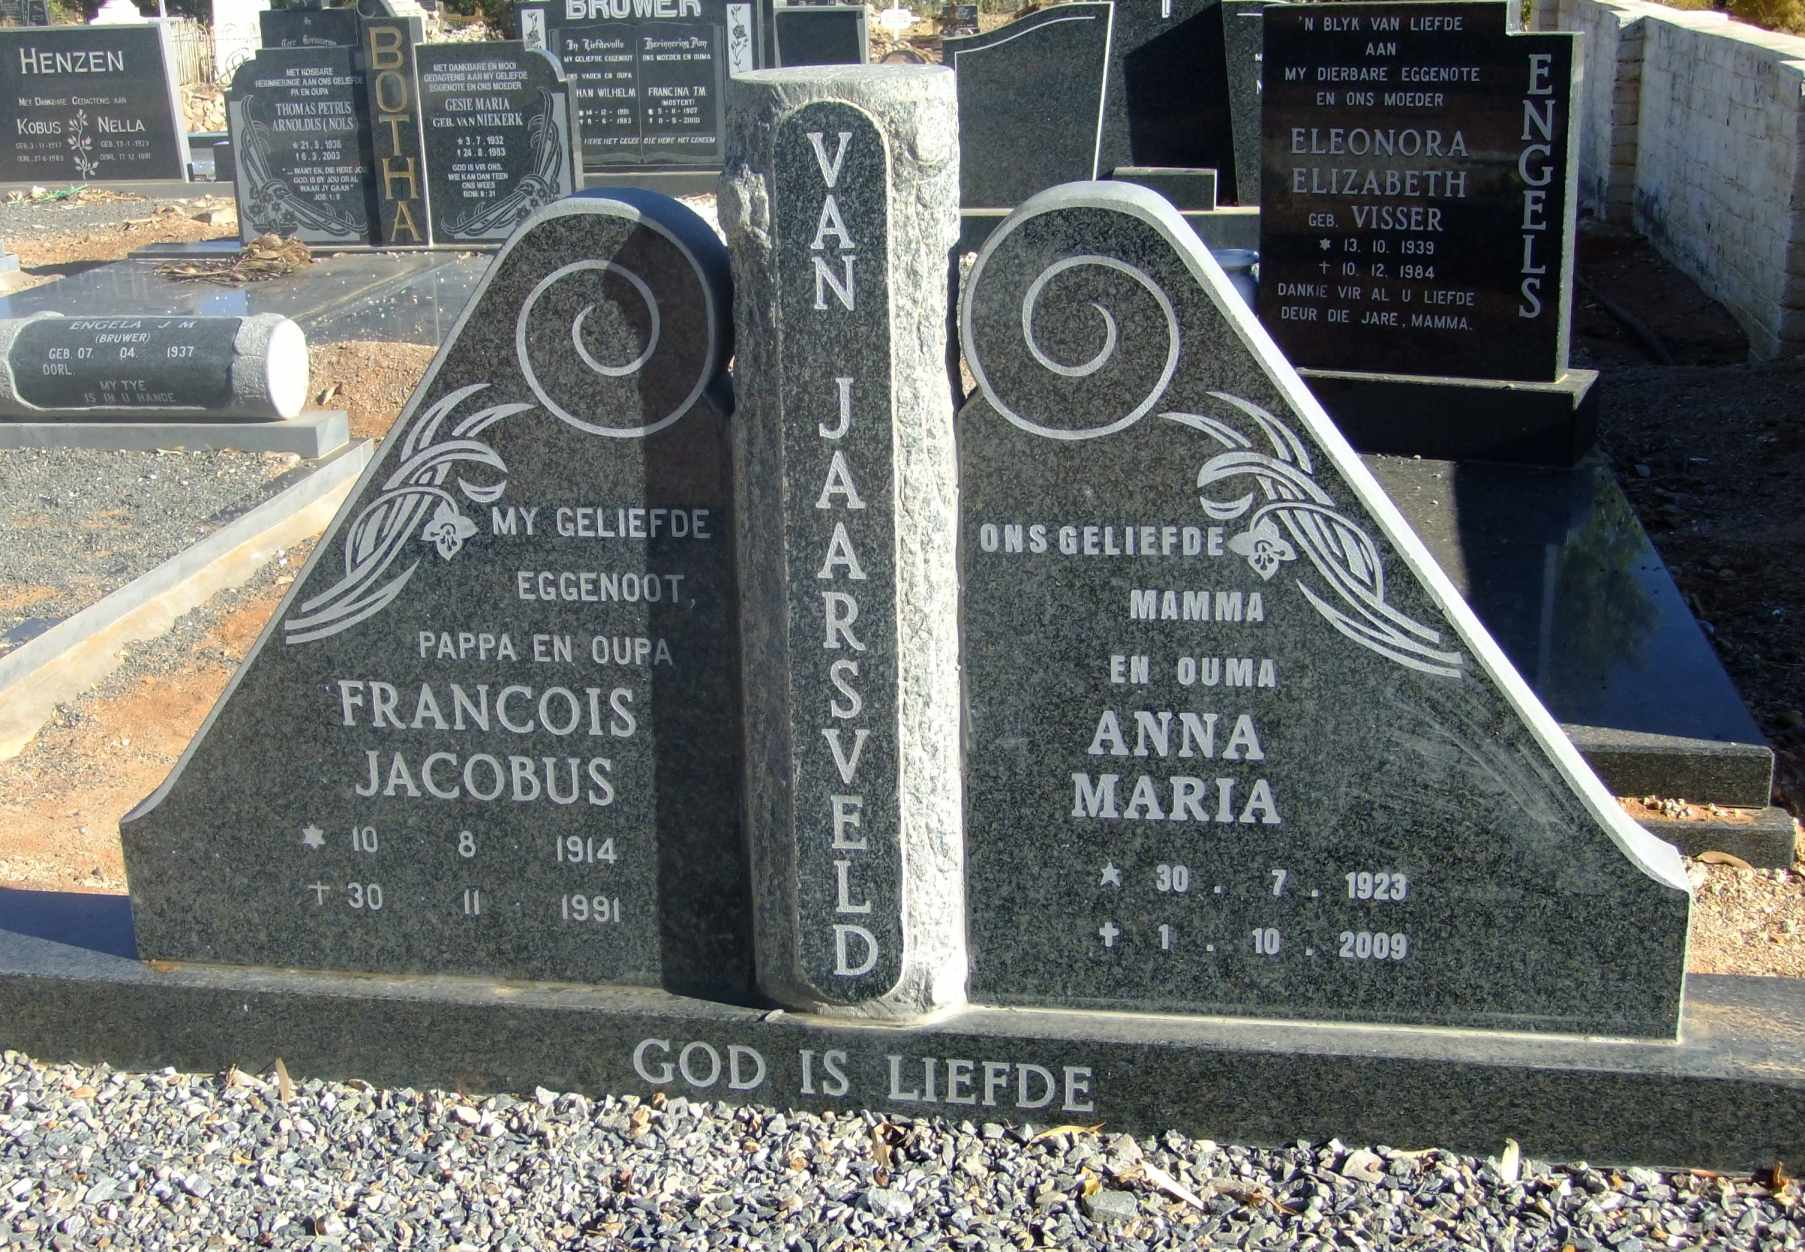 Van Jaarsveld, 10 August 1914 died 30 November 1991 and Anna Maria born 30 July 1923 died 1 October 2009